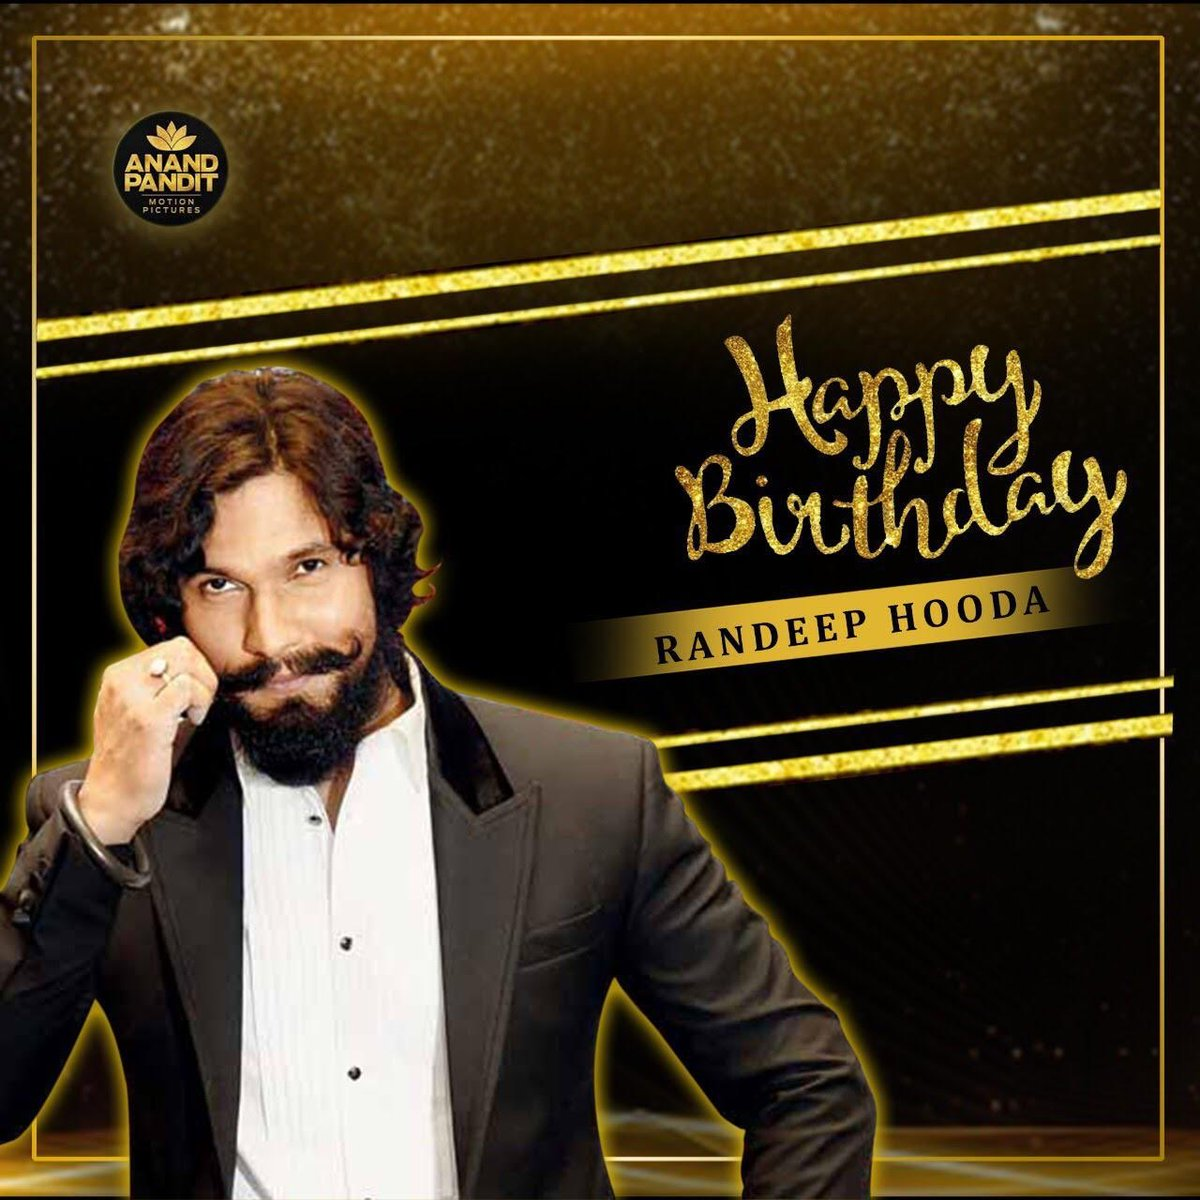 An actor par excellence who always puts up a stellar show on screen! Here's wishing @RandeepHooda a very Happy Birthday. #HappyBirthday #RandeepHooda https://t.co/0FBvDH94ep